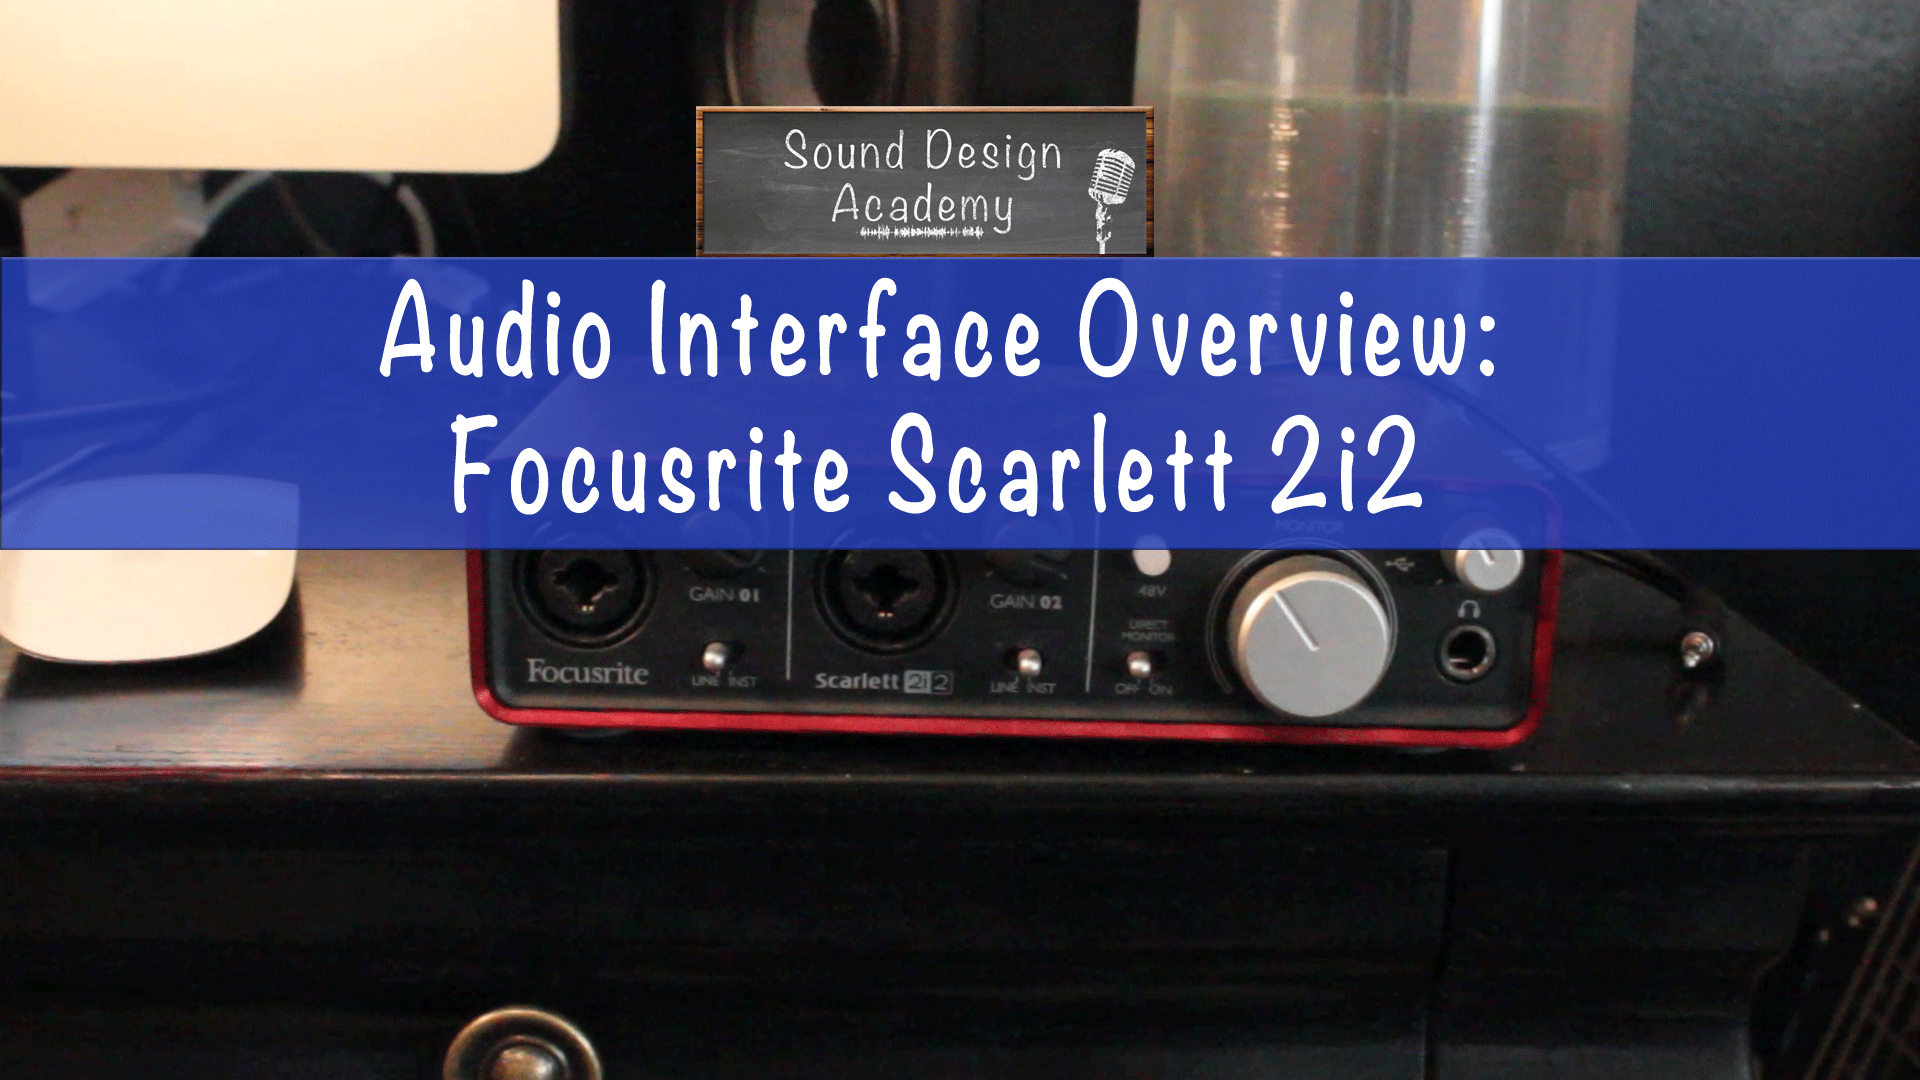 Audio_Interface_Overview Focusrite Scarlett 2i2